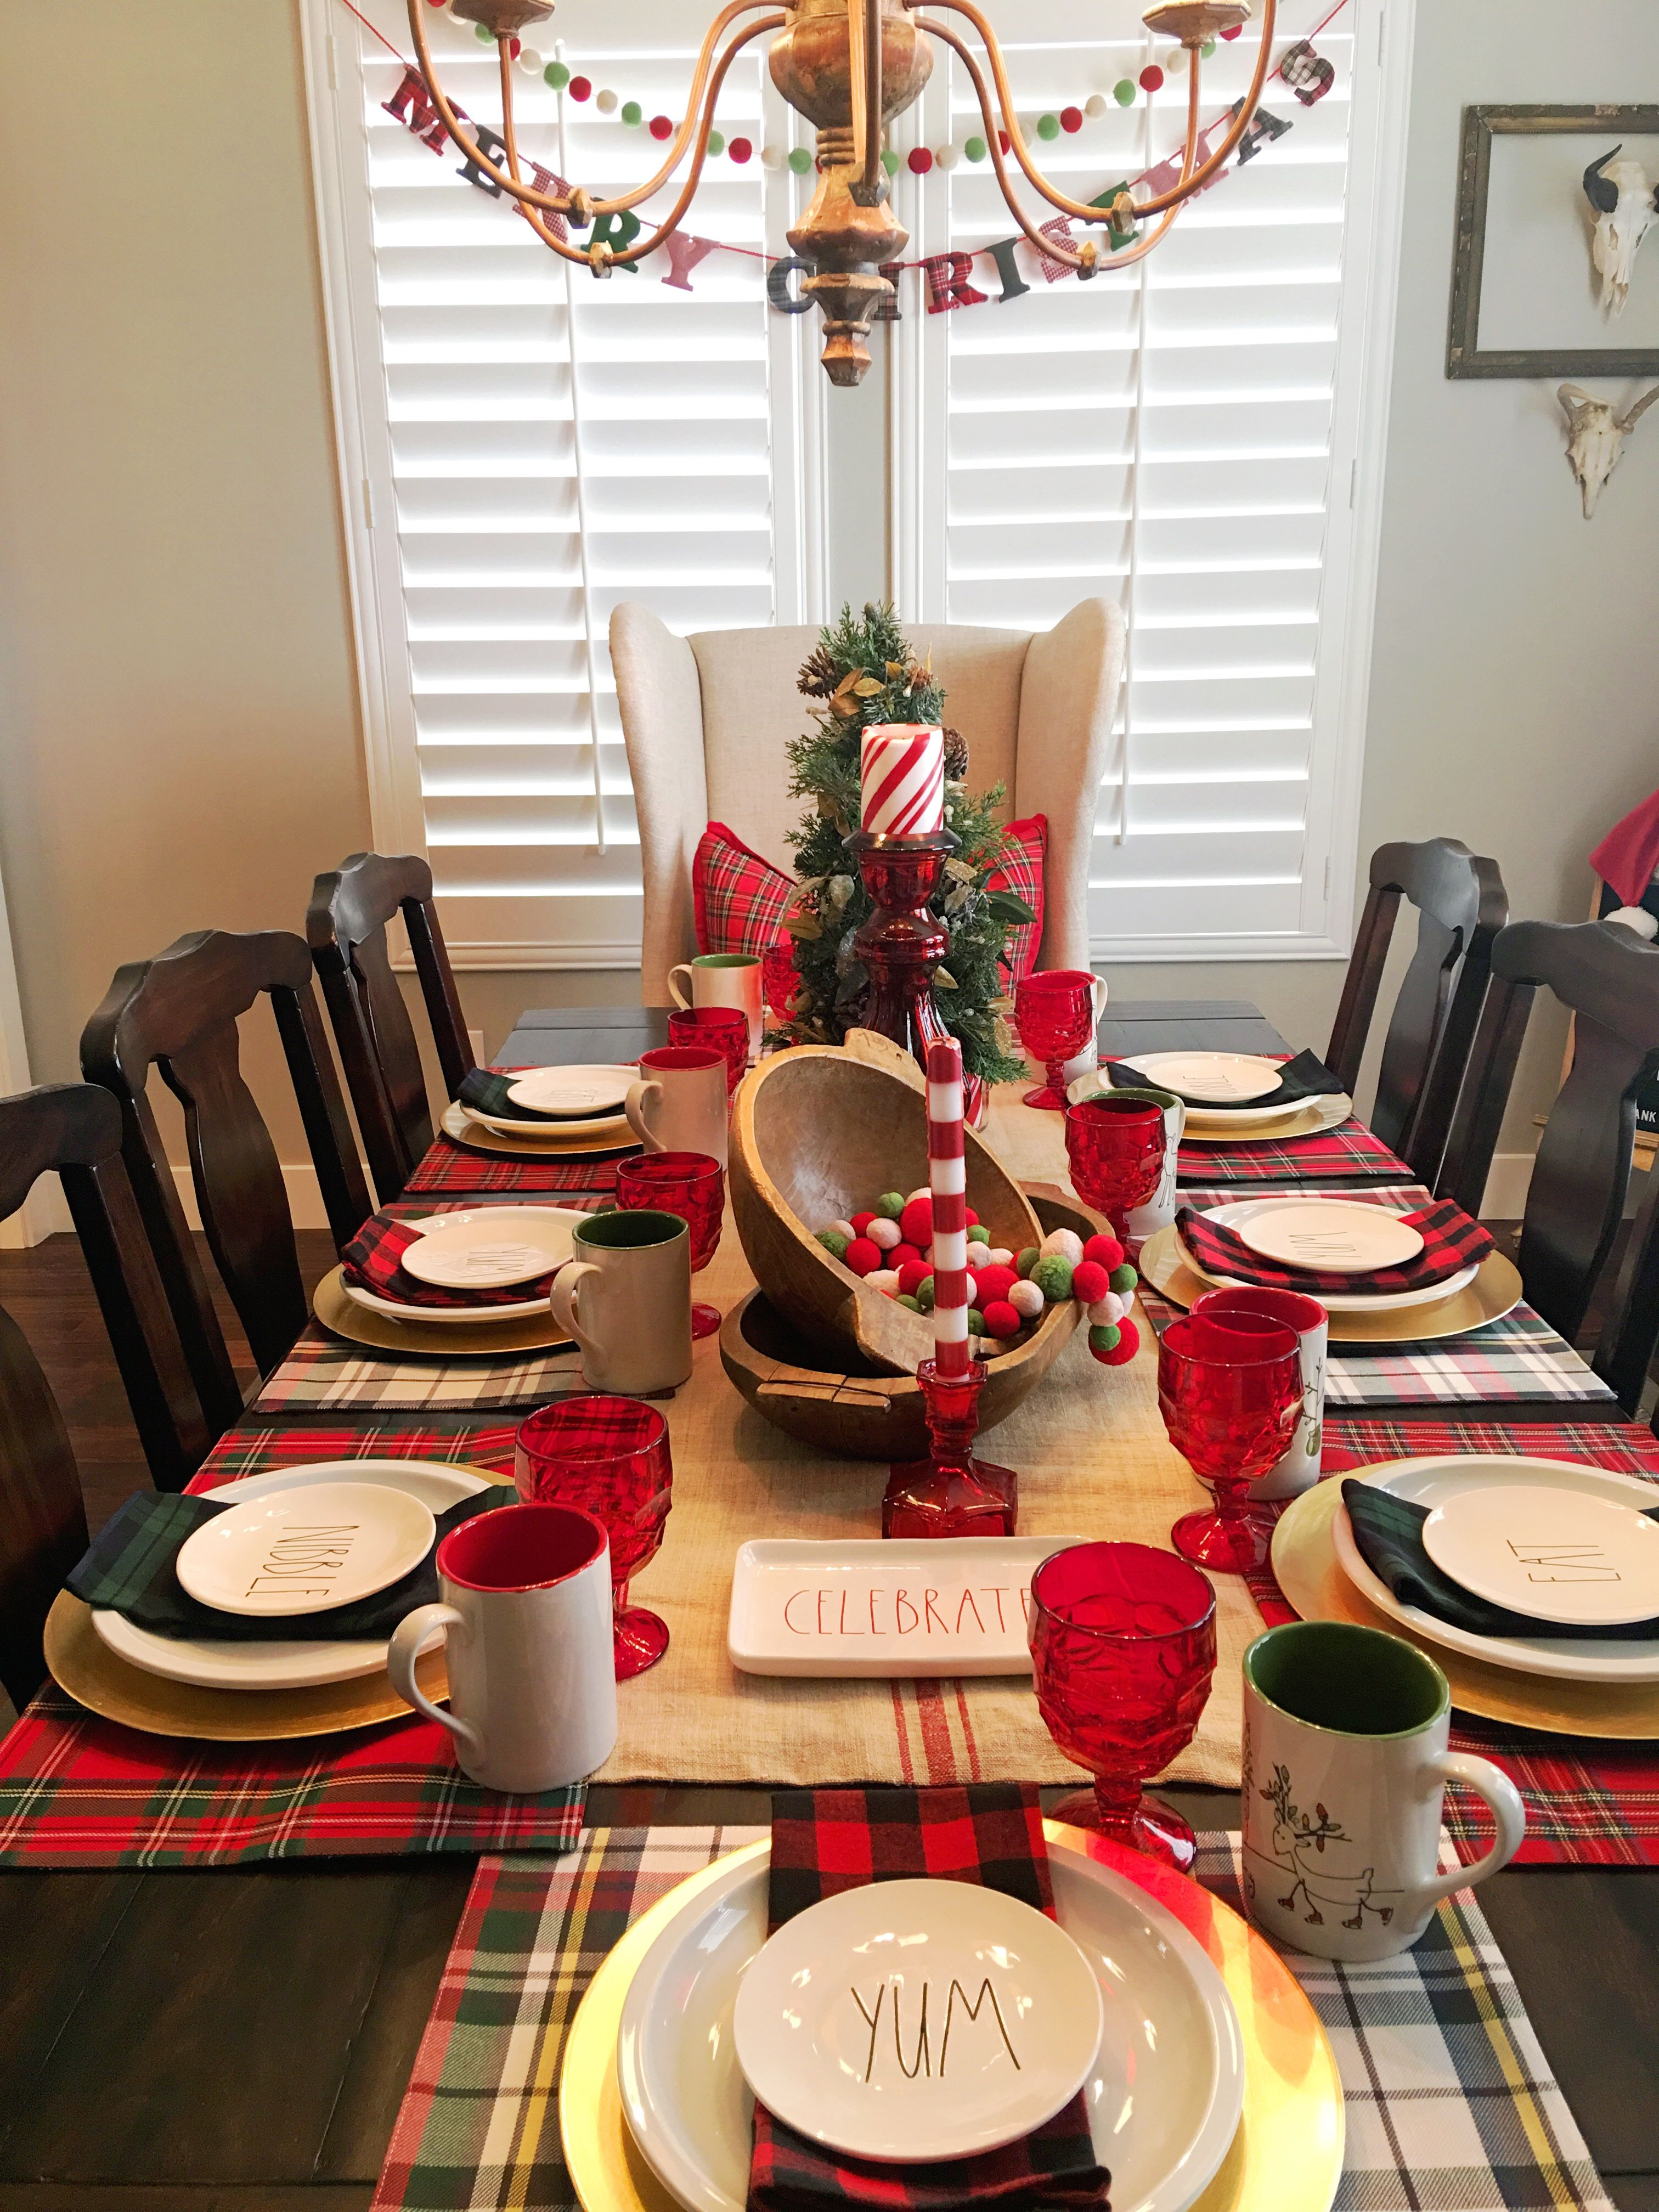 Christmas Table Setting #Potterybarn #Plaid #Duffyhouse #Chalkandfable #Linen #Retorationhardware